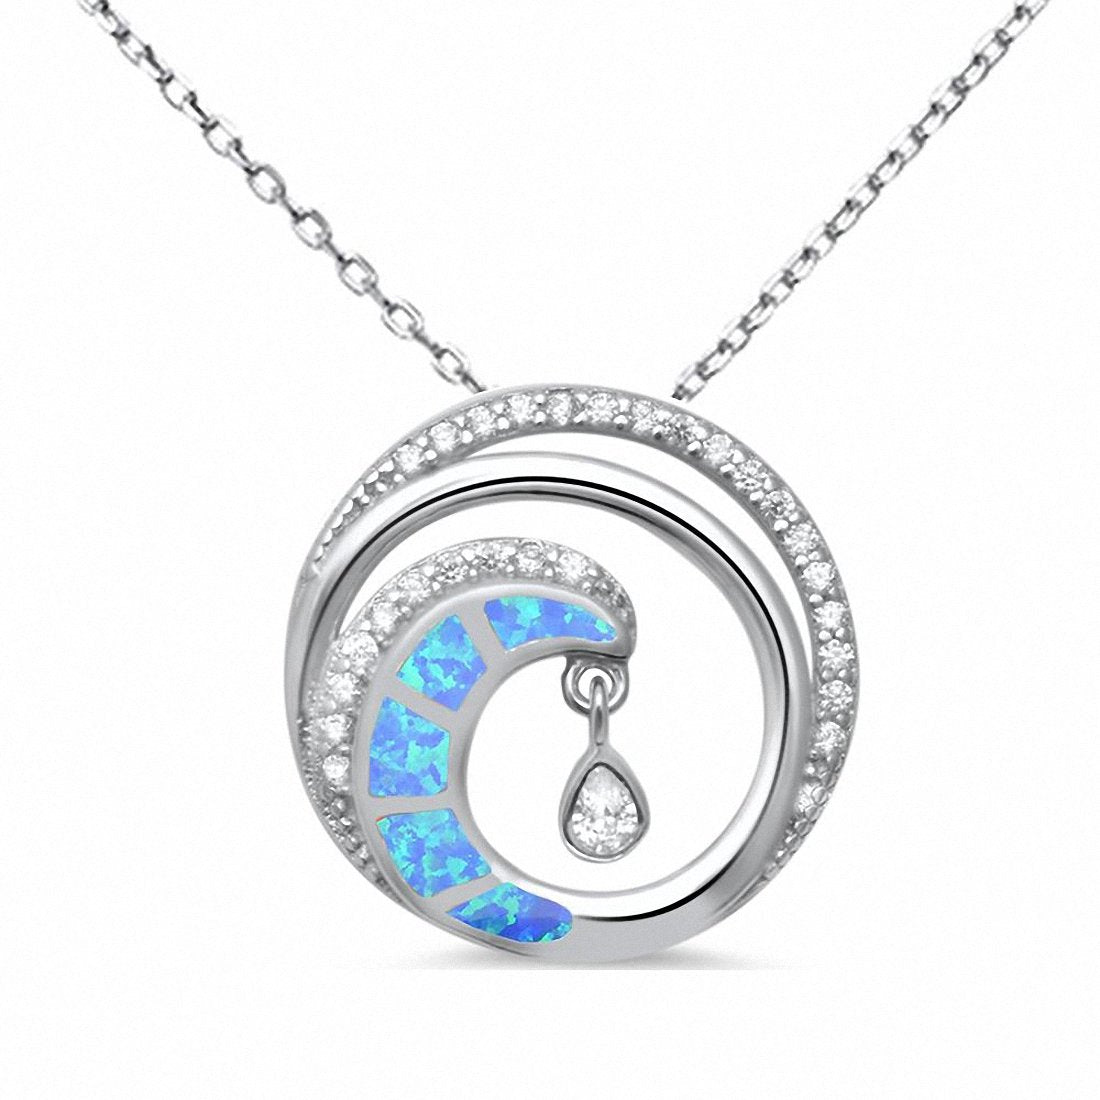 "Wave Pendant Necklace 18"" Simulated Cubic Zirconia 925 Sterling Silver"